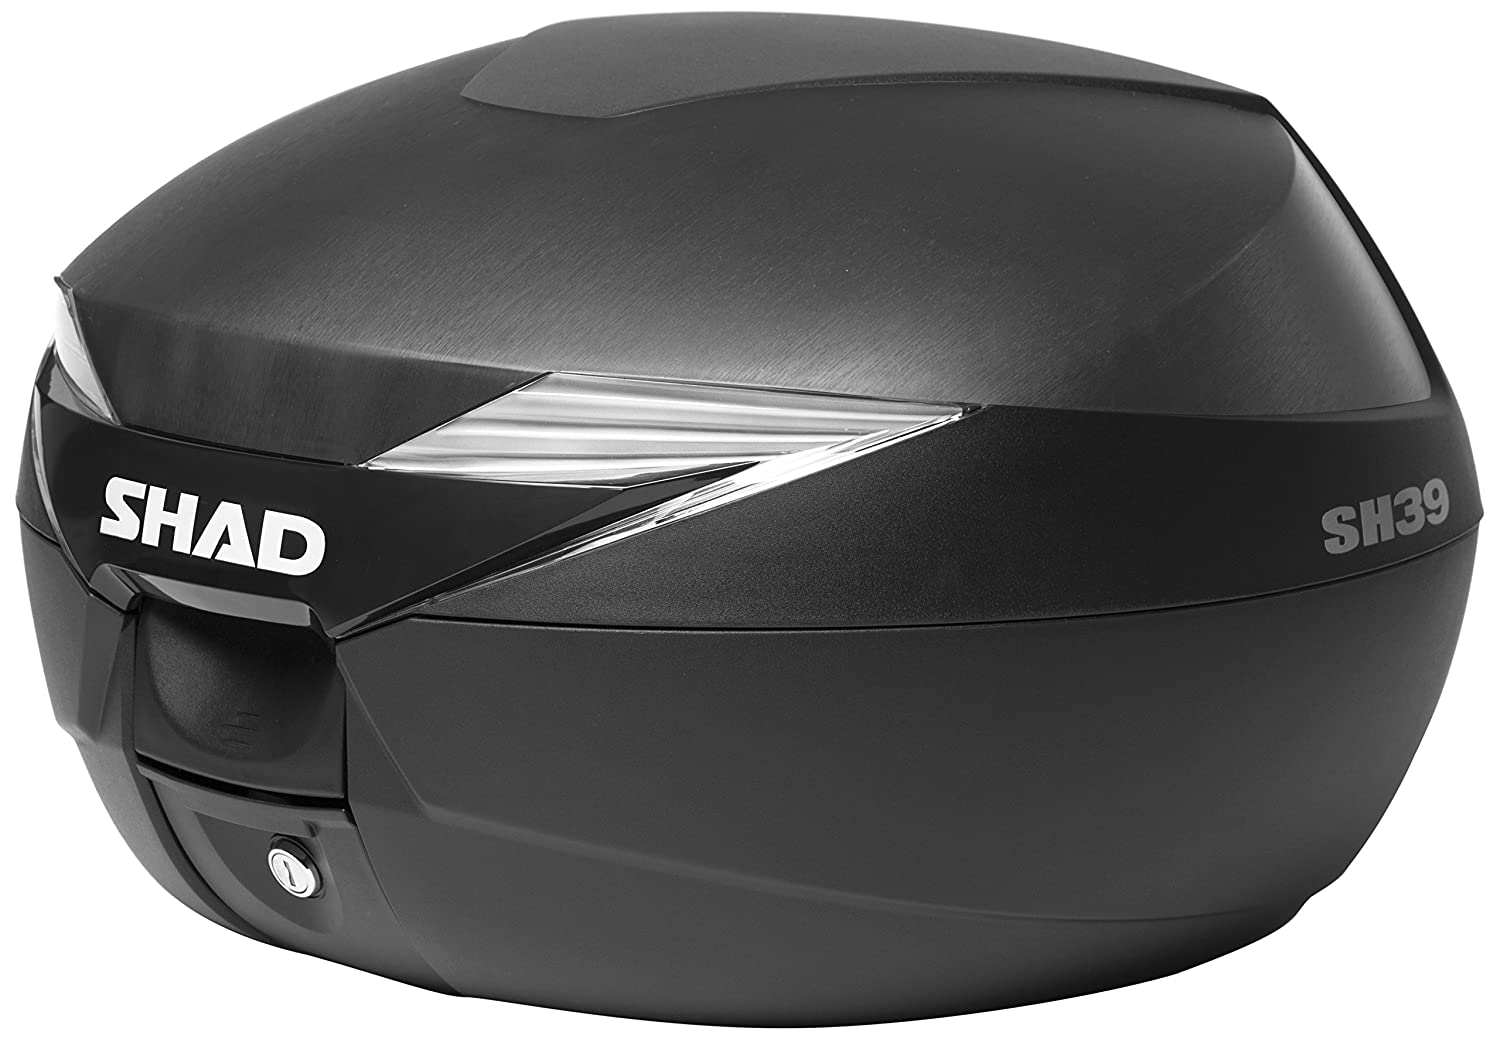 SHAD D0B39100 Top Case with Mounting Plate, Black NAD S.L